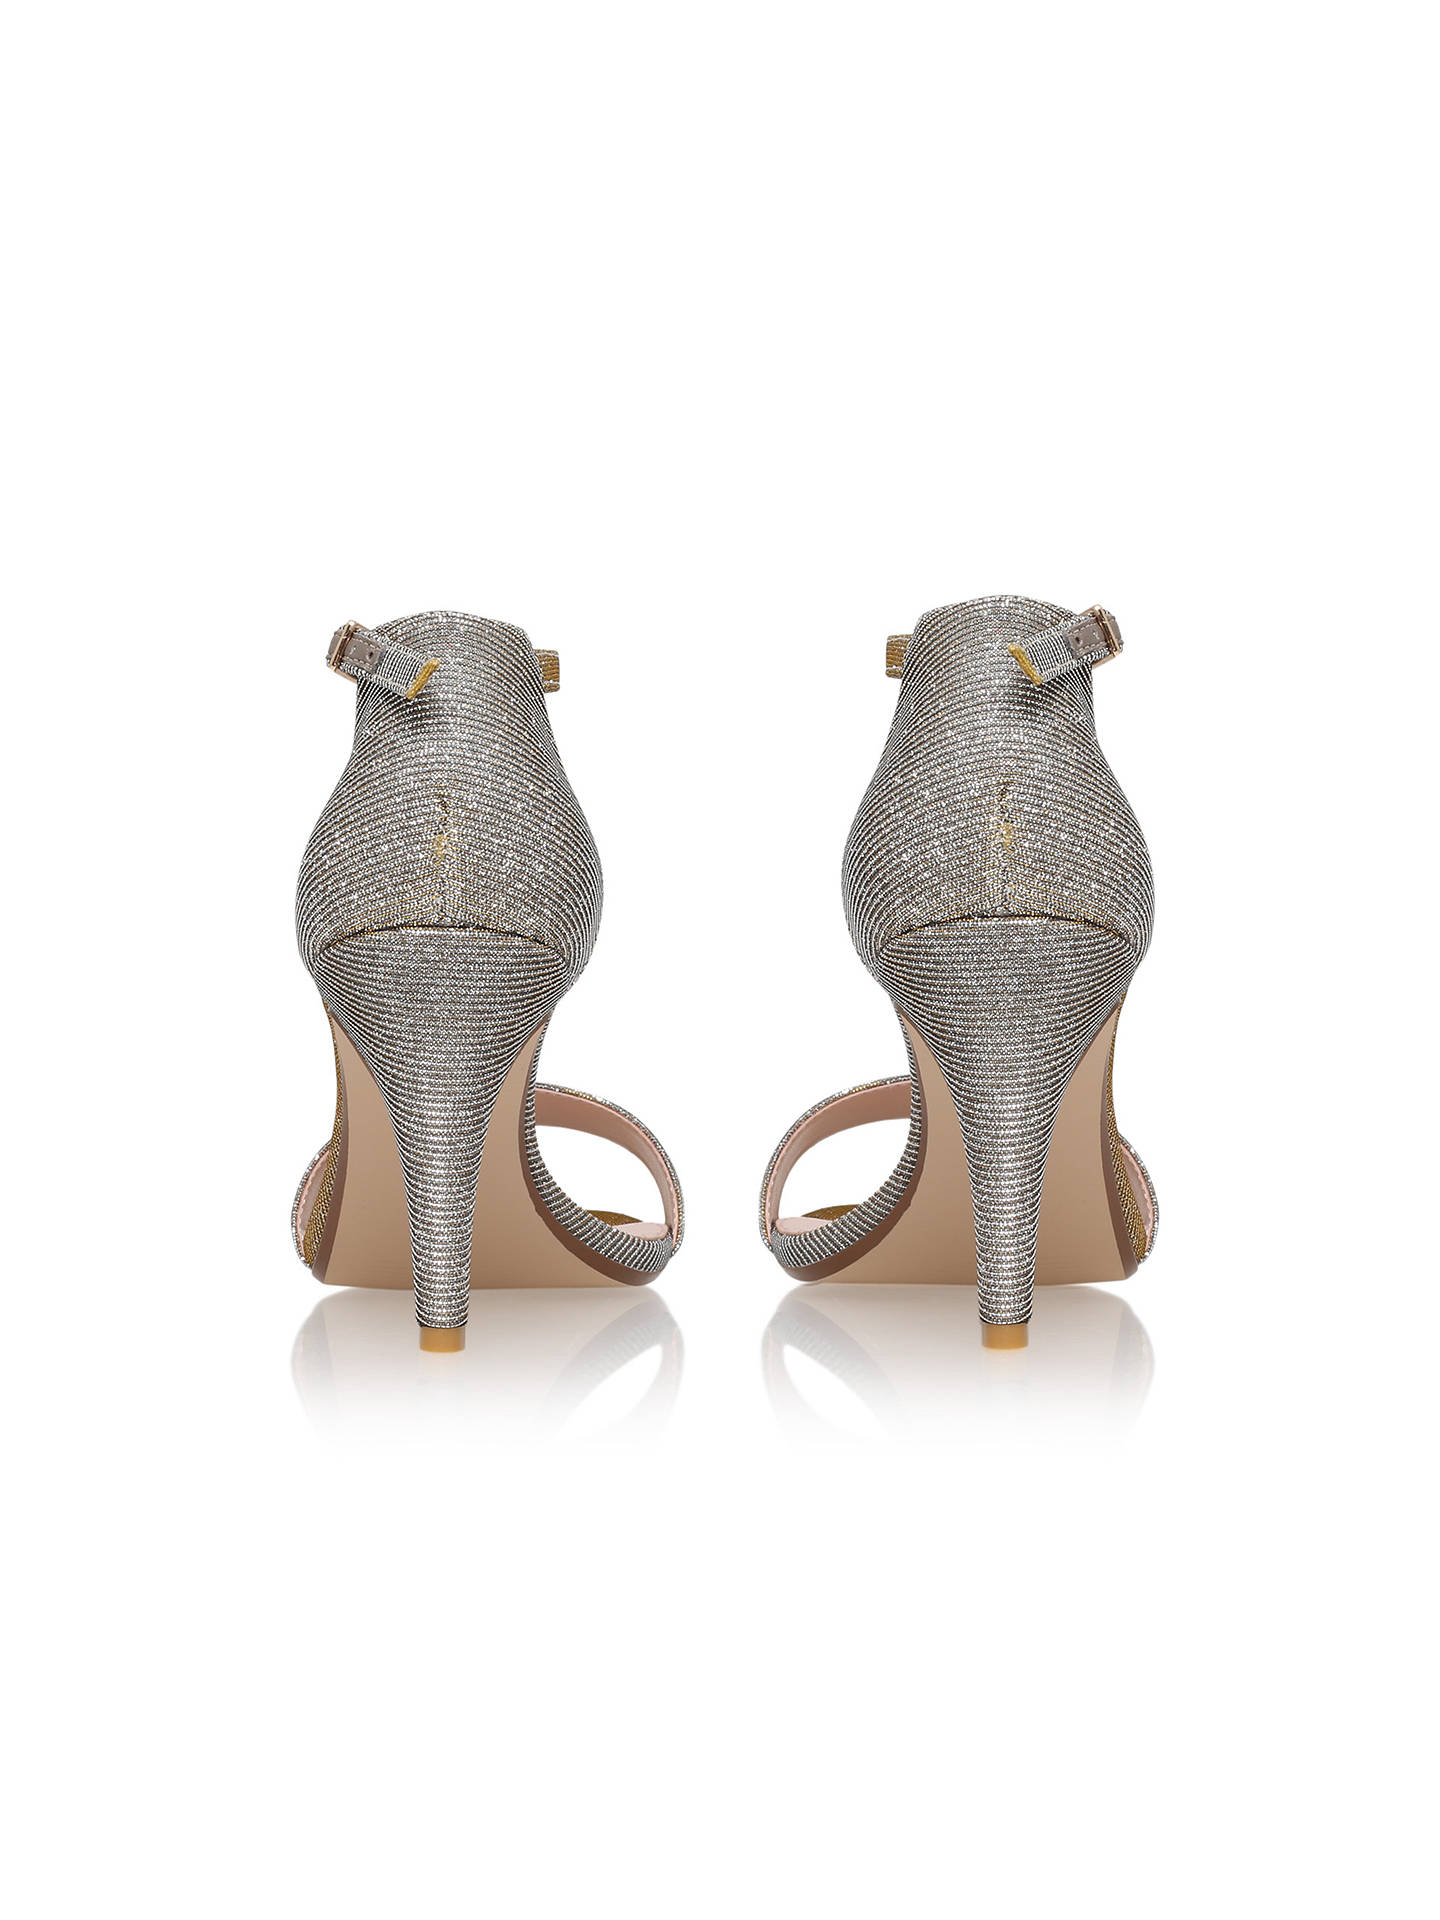 Buy Carvela Kiwi Barely There High Heel Sandals, Bronze, 3 Online at johnlewis.com